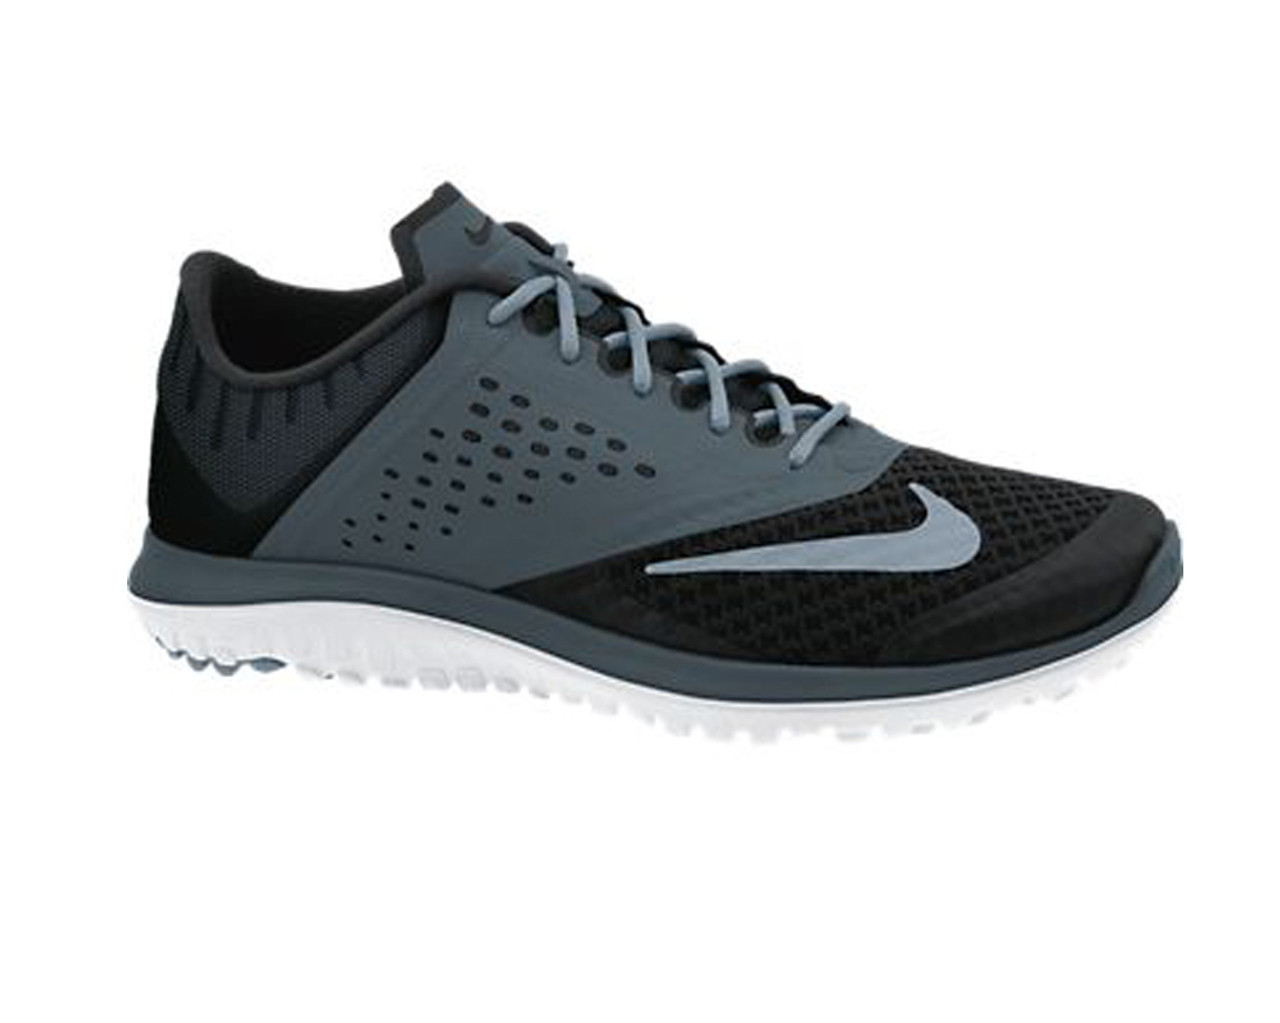 innovative design 3dc0b a4e96 Nike Women s FS Lite Run 2 Running Shoes Black Grey - Shop now   Shoolu